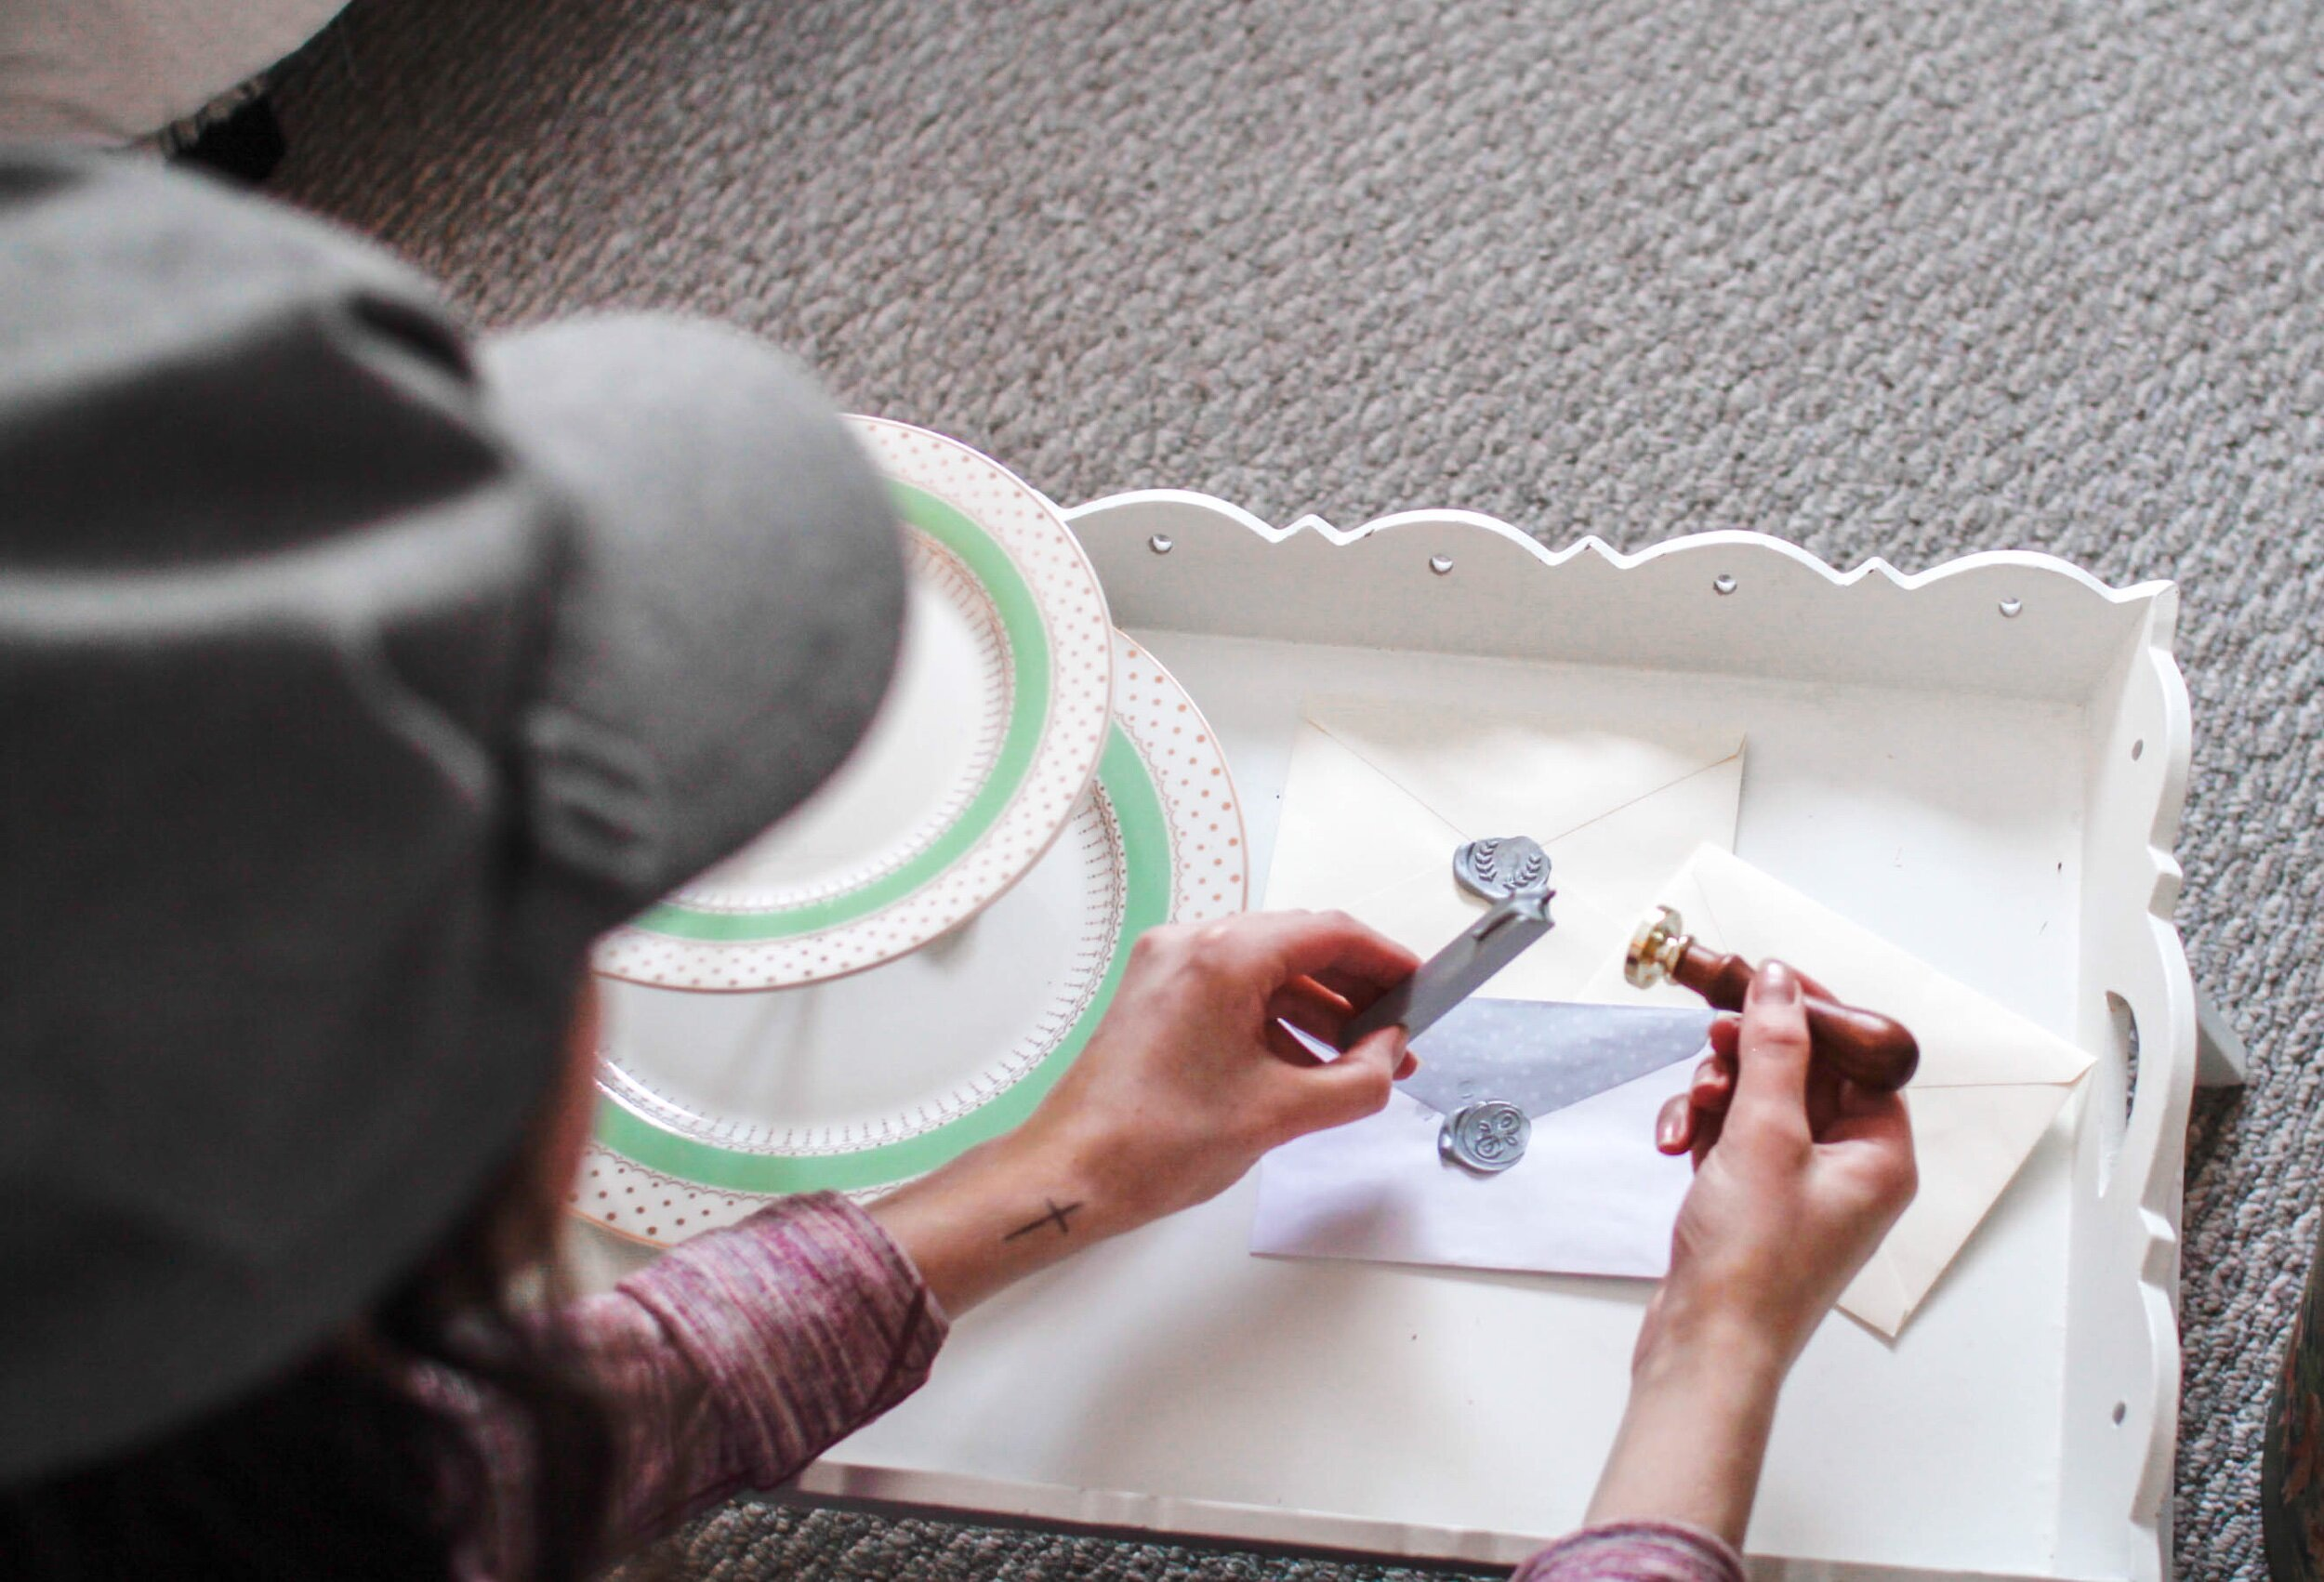 Fun paper crafts to do at home